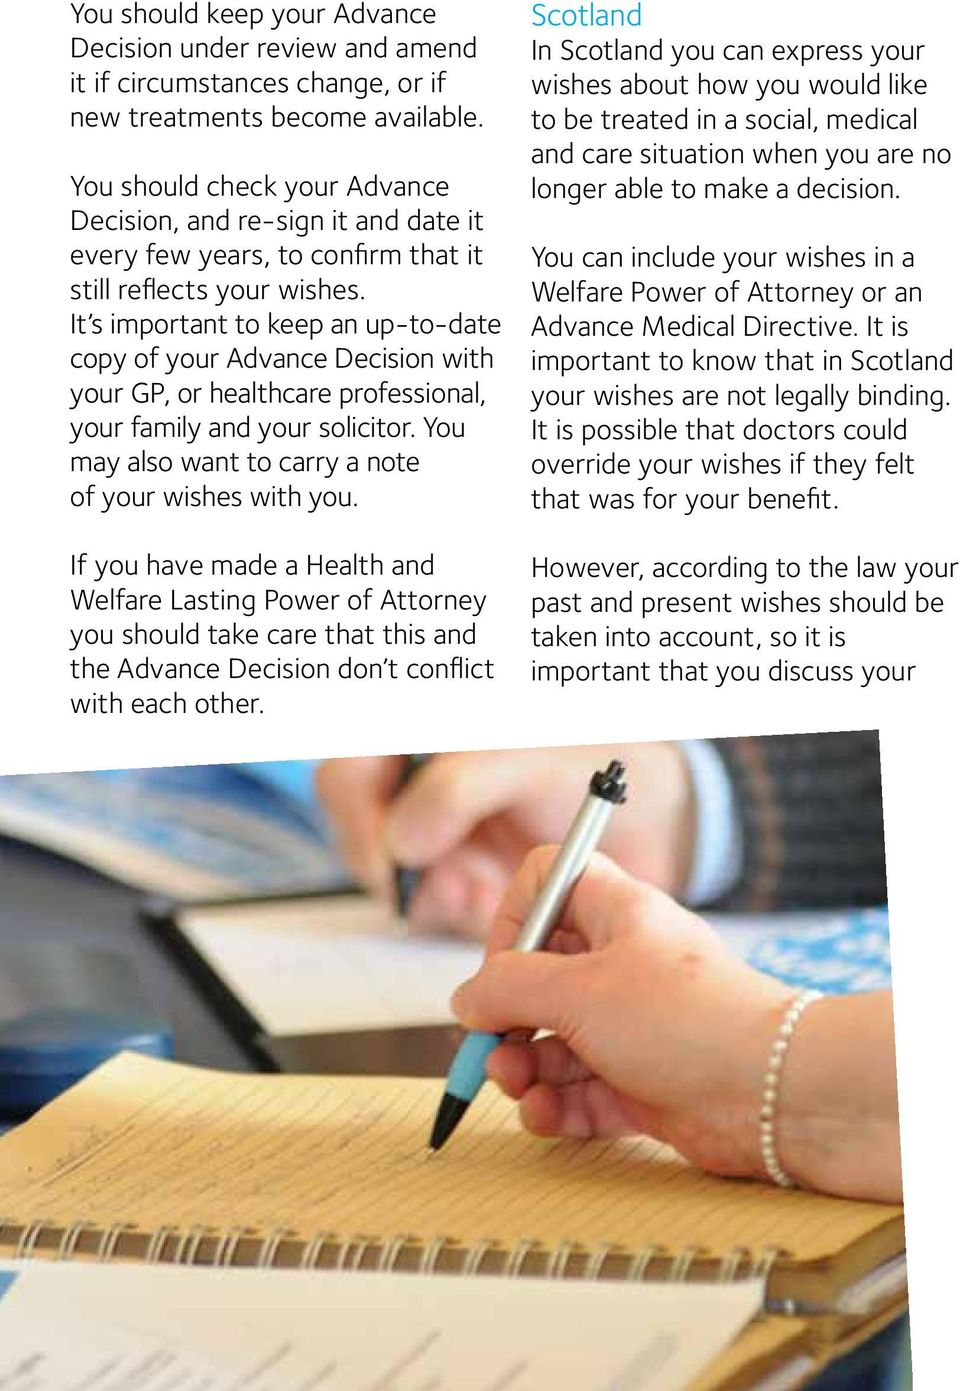 It s important to keep an up-to-date copy of your Advance Decision with your GP, or healthcare professional, your family and your solicitor. You may also want to carry a note of your wishes with you.